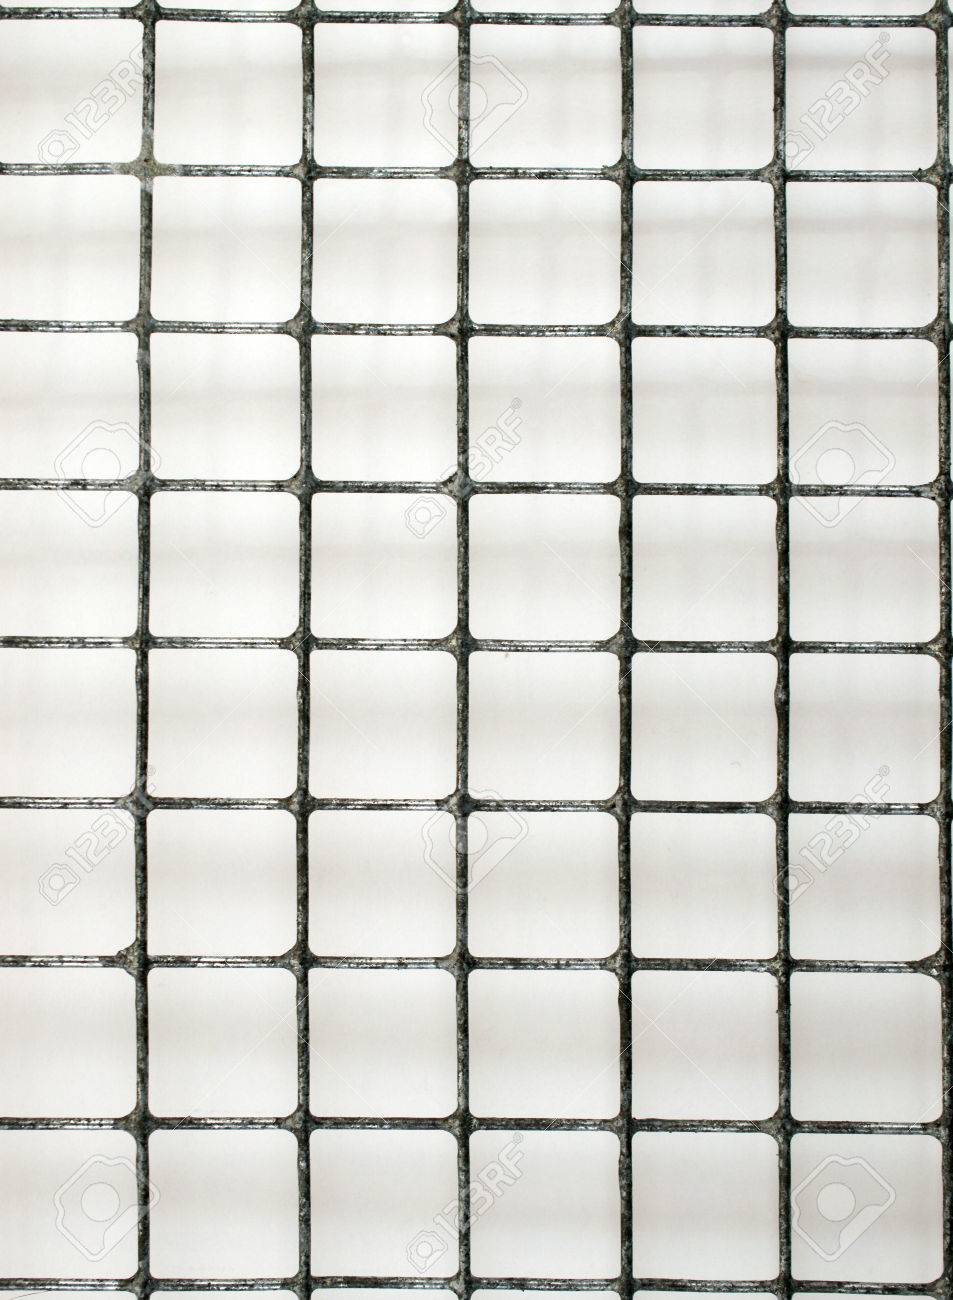 Metal Bars Chicken Wire Background Stock Photo, Picture And Royalty ...